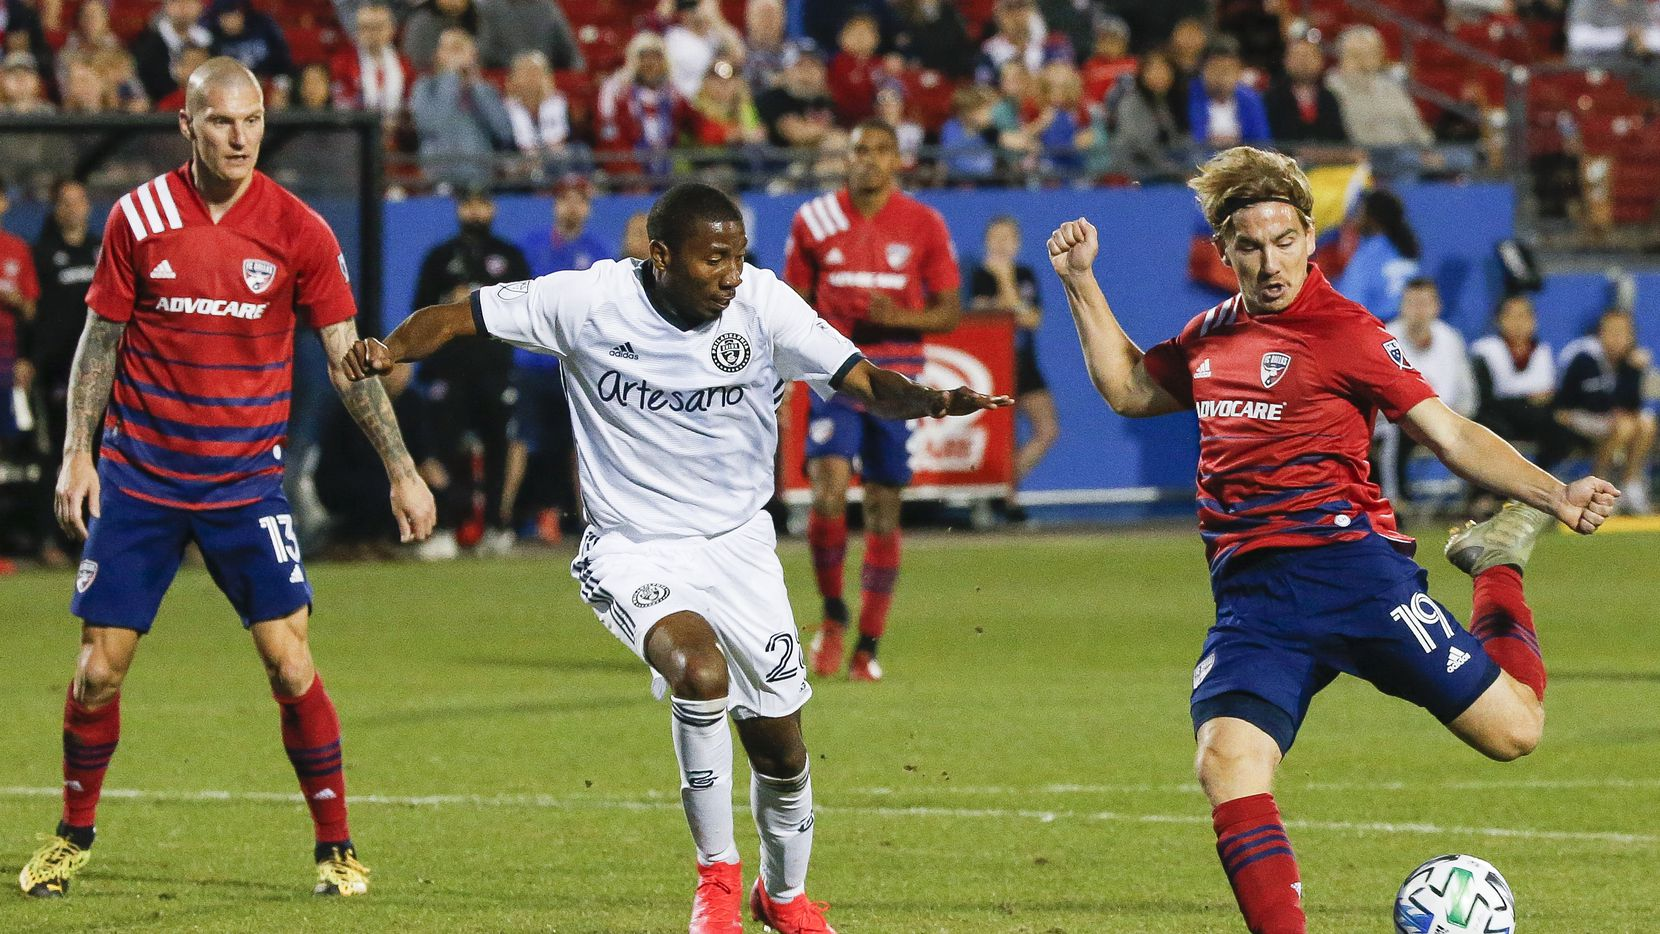 FC Dallas midfielder Paxton Pomykal (19) scores during the second half of an MLS soccer match between FC Dallas and Philadelphia Union on Saturday, Feb. 29, 2020 at Toyota Stadium in Frisco, Texas.